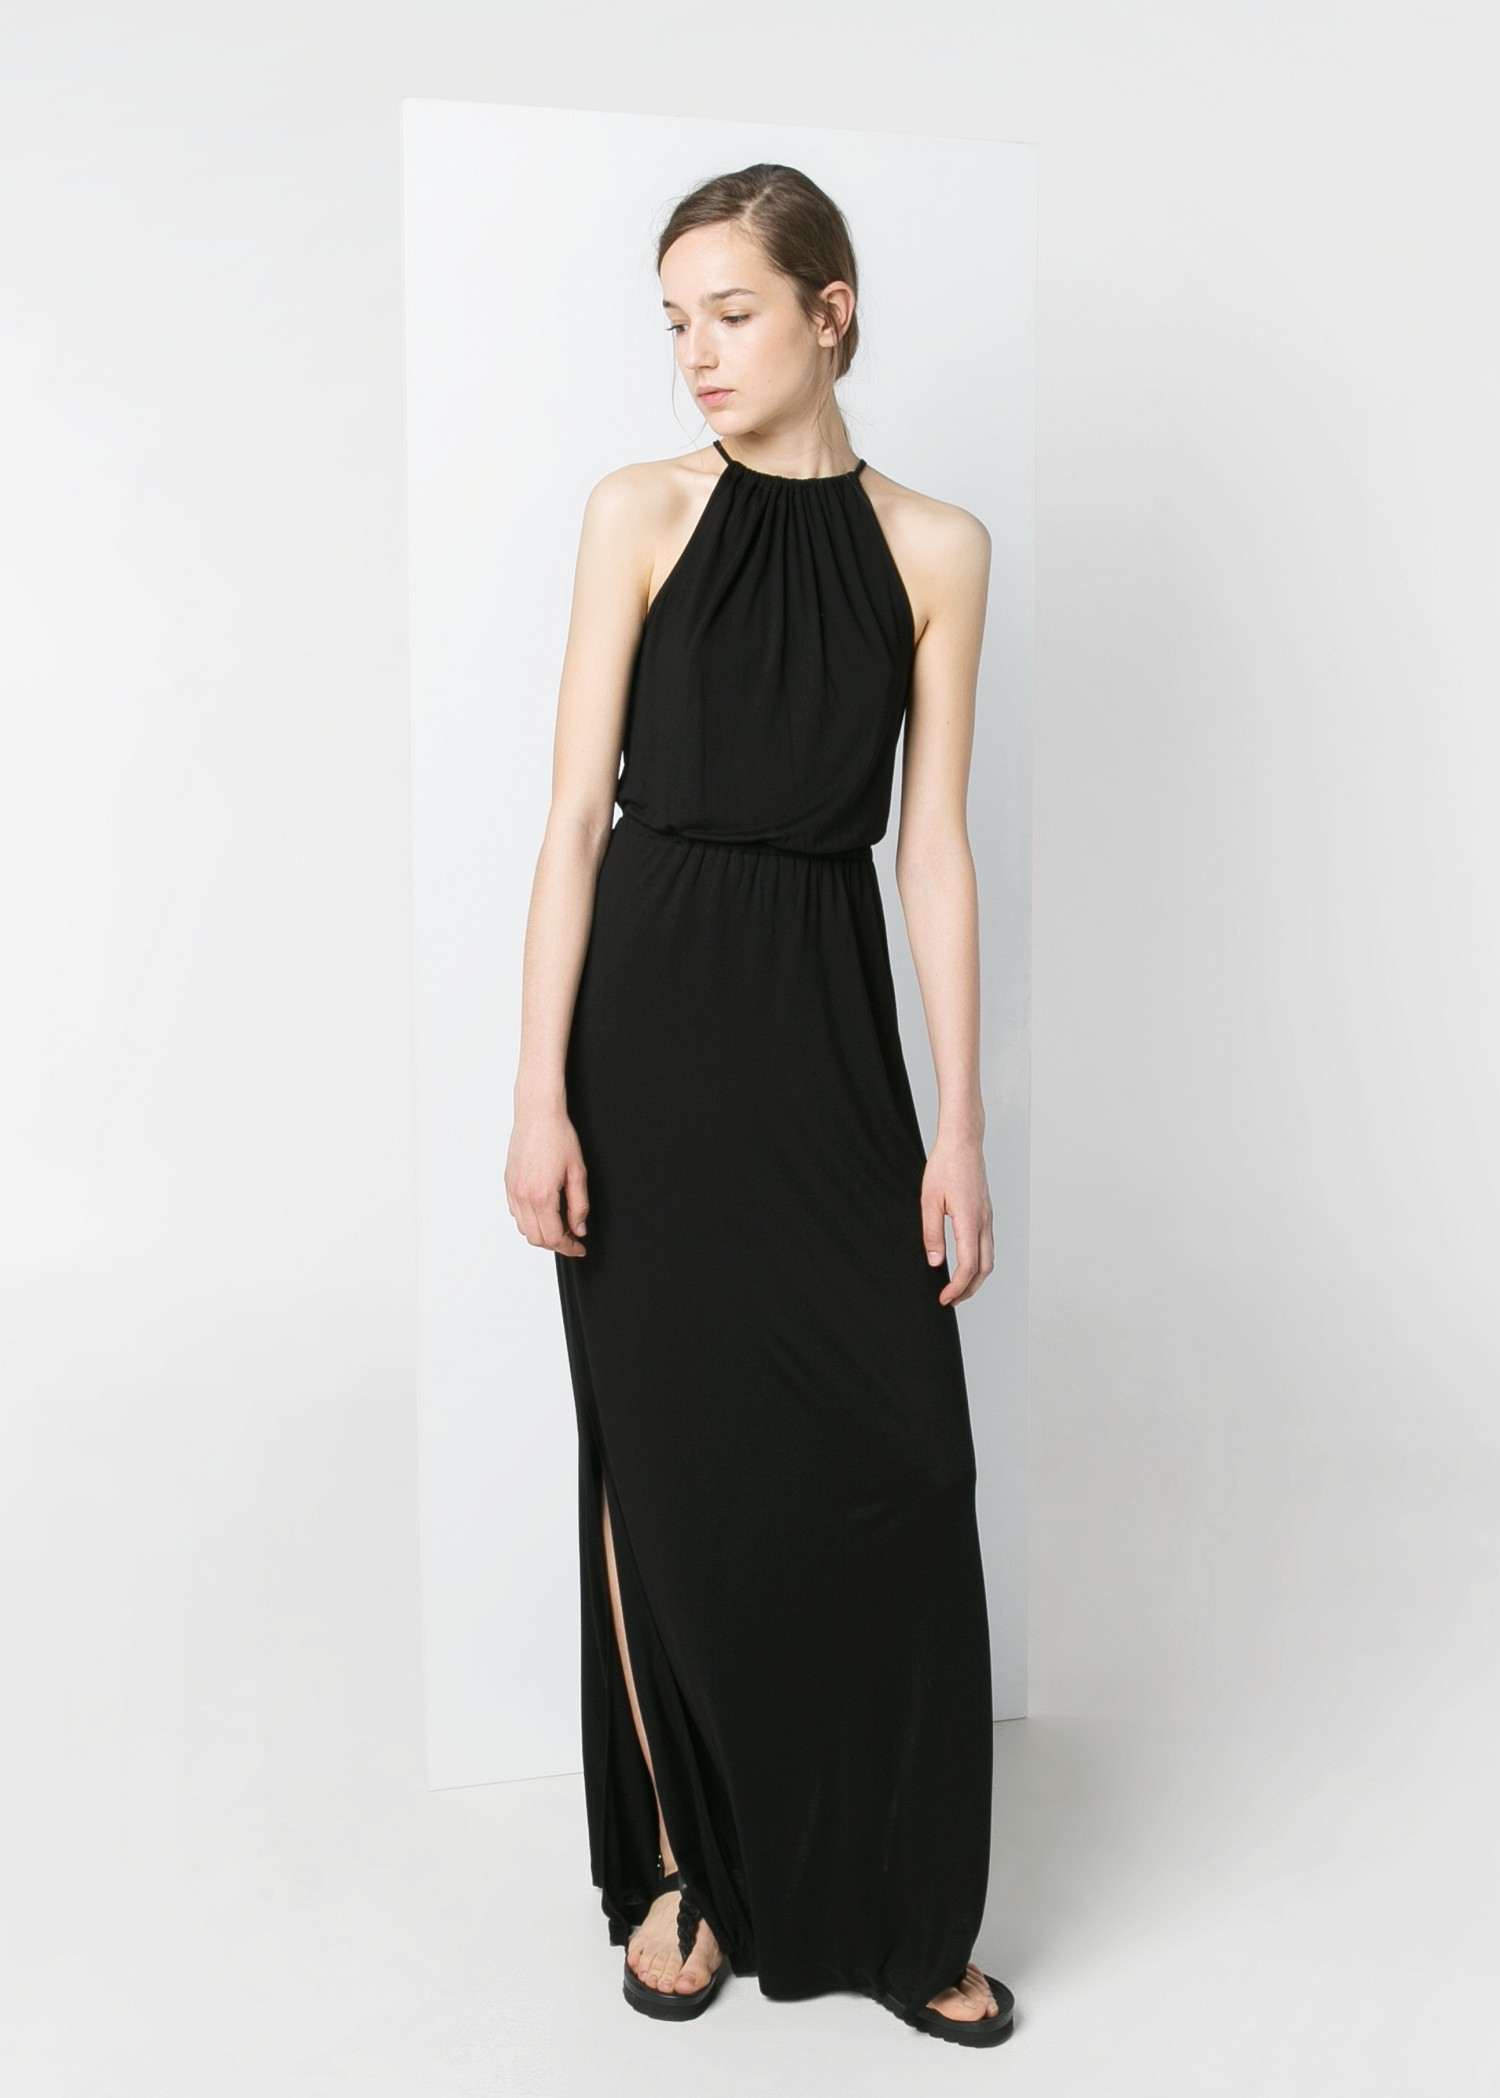 Mango Halter Long Dress in Black | Lyst